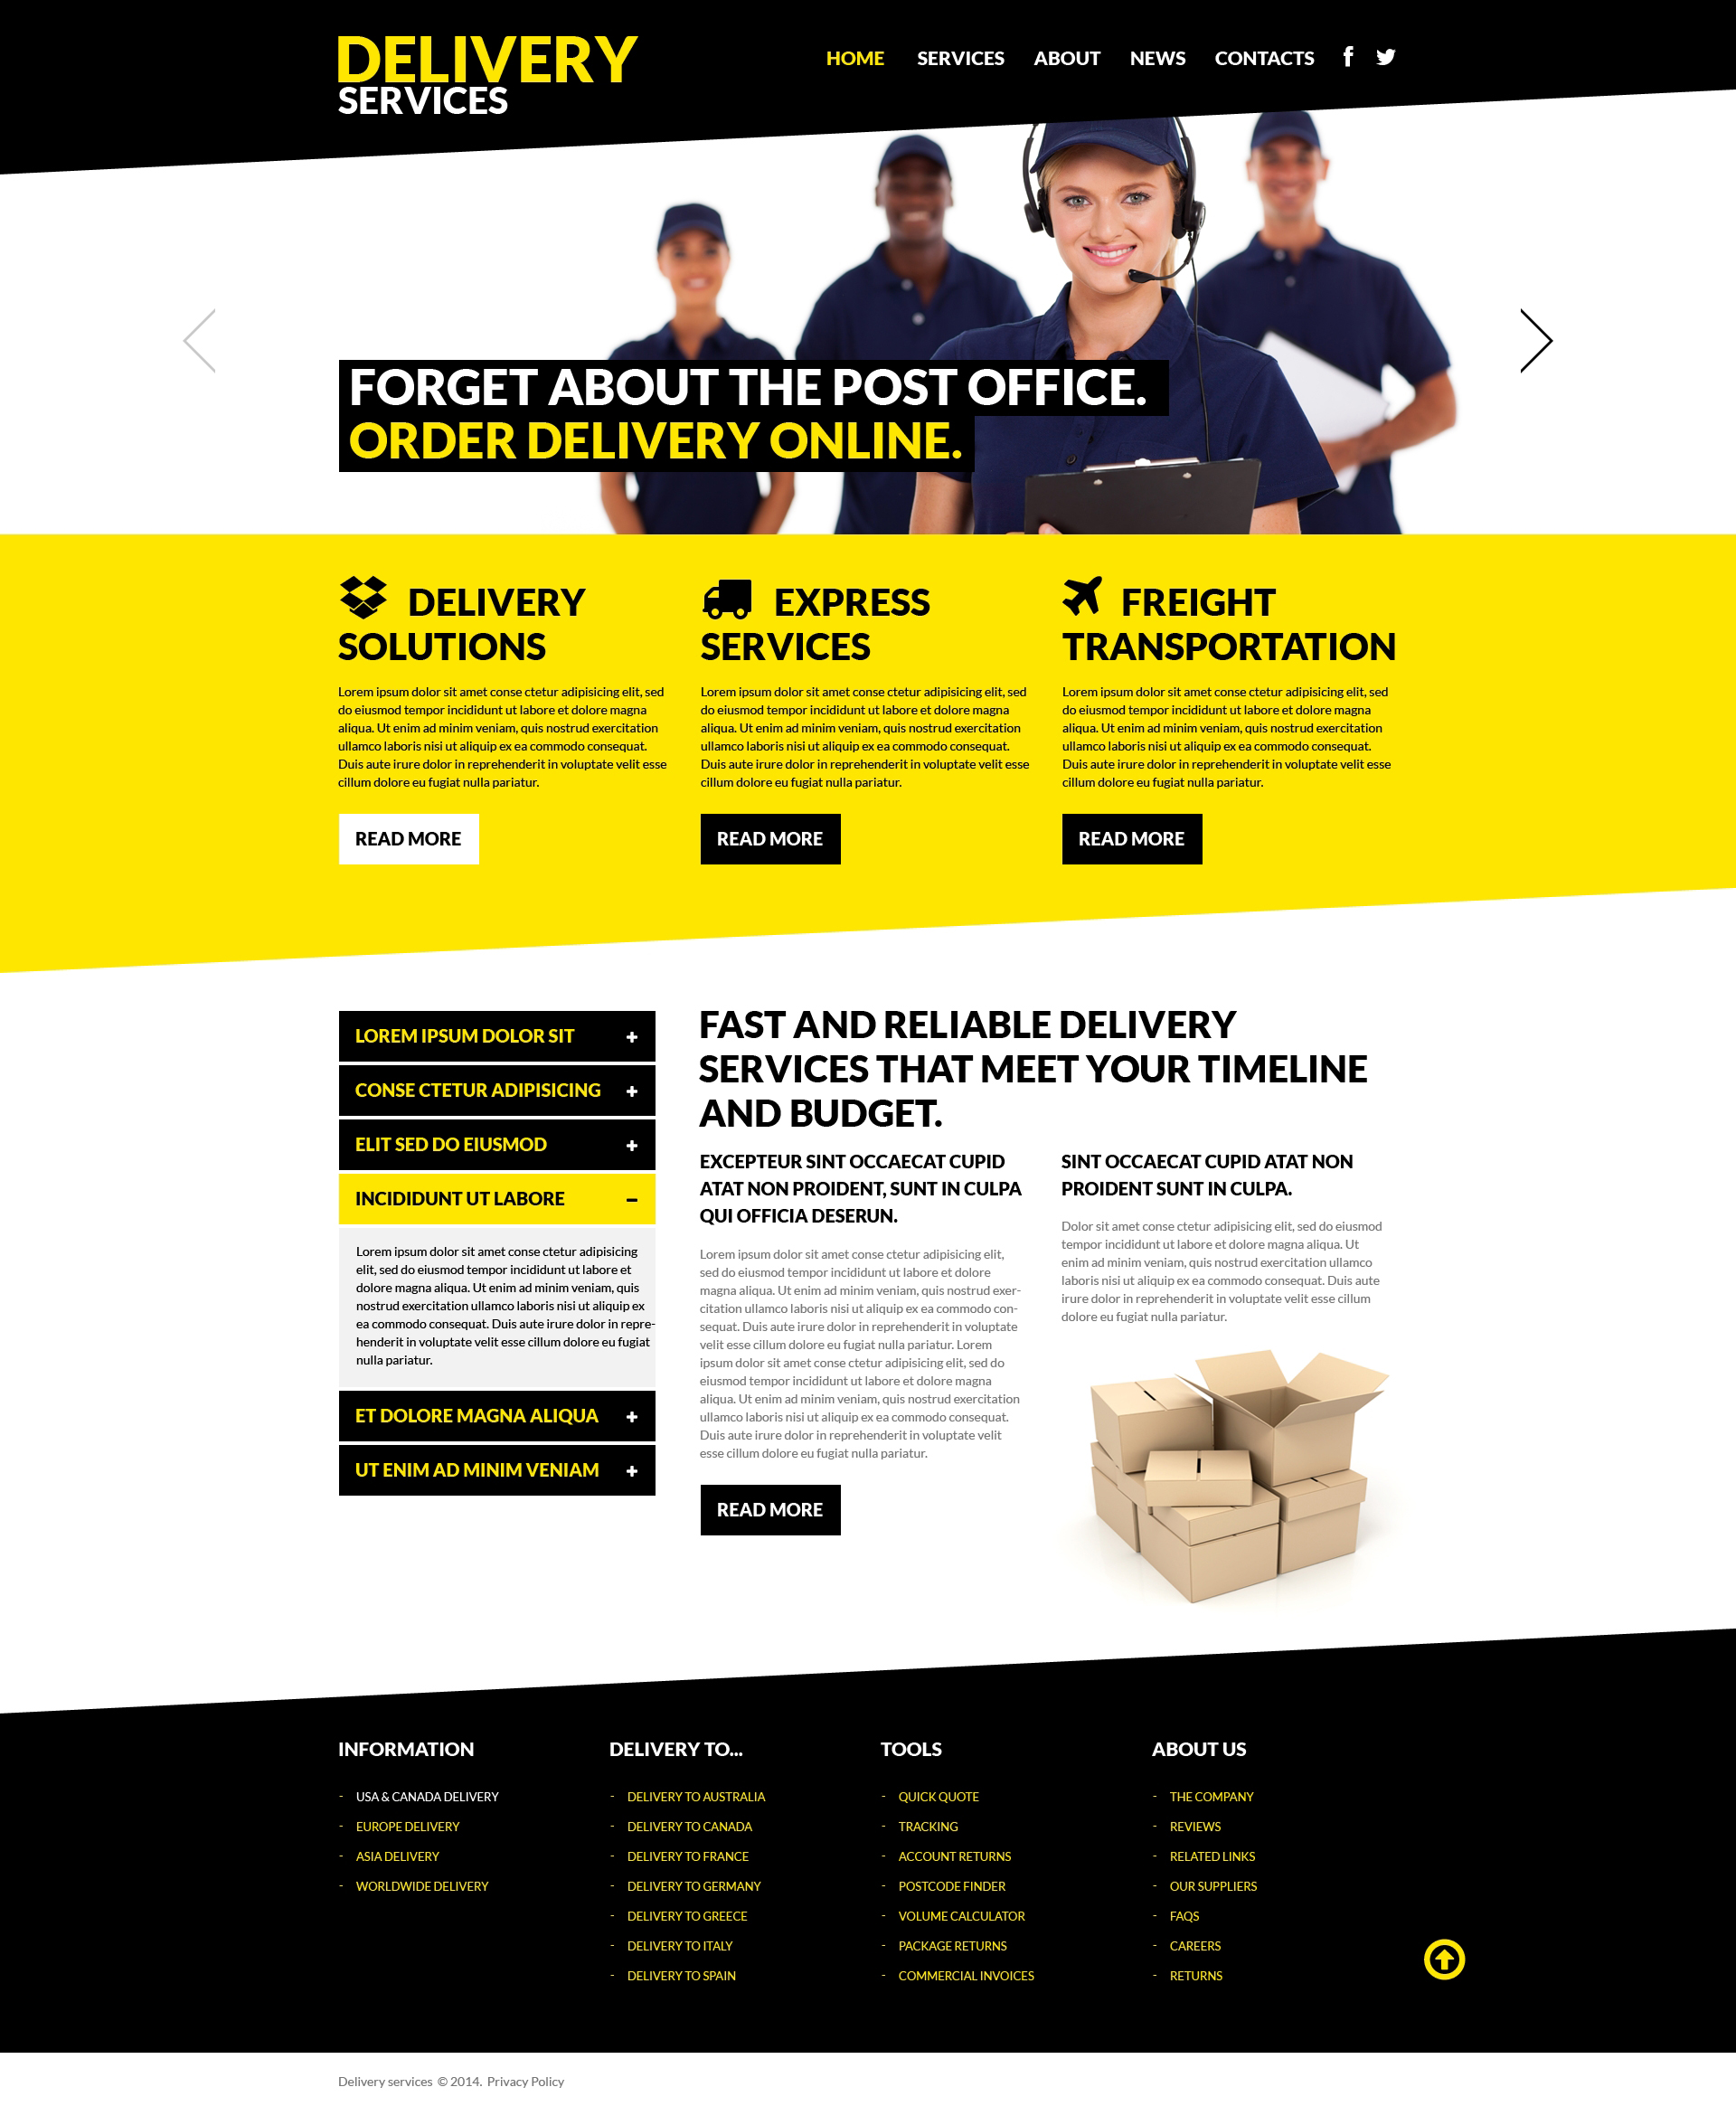 Delivery Services Responsive Website Template #50710